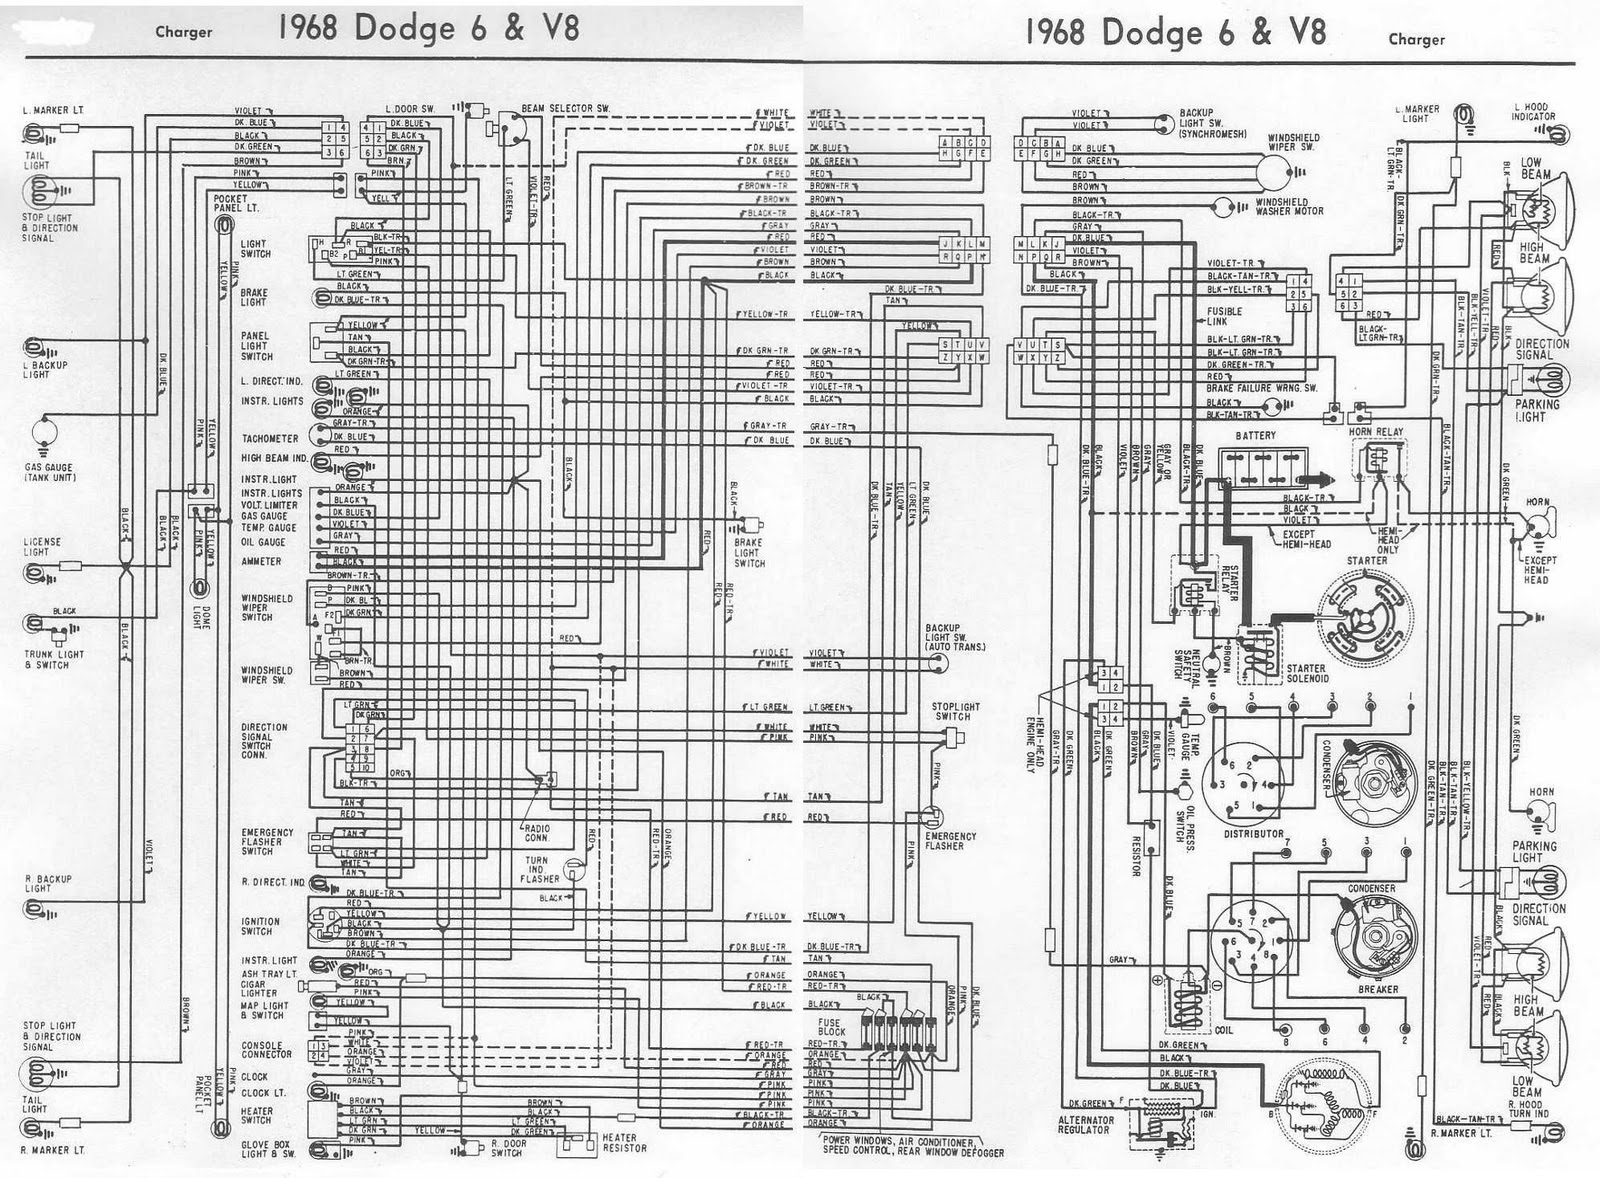 67 Dodge Dart Wiring Diagram - 6.11.asyaunited.de • on saturn engine wiring diagram, dodge dart engine wiring diagram, vw engine wiring diagram, subaru engine wiring diagram, mustang engine wiring diagram, dodge truck engine wiring diagram, jeep cherokee engine wiring diagram, pt cruiser engine wiring diagram, nissan engine wiring diagram, ford engine wiring diagram, chevrolet engine wiring diagram, toyota engine wiring diagram, dodge durango engine wiring diagram, honda engine wiring diagram,